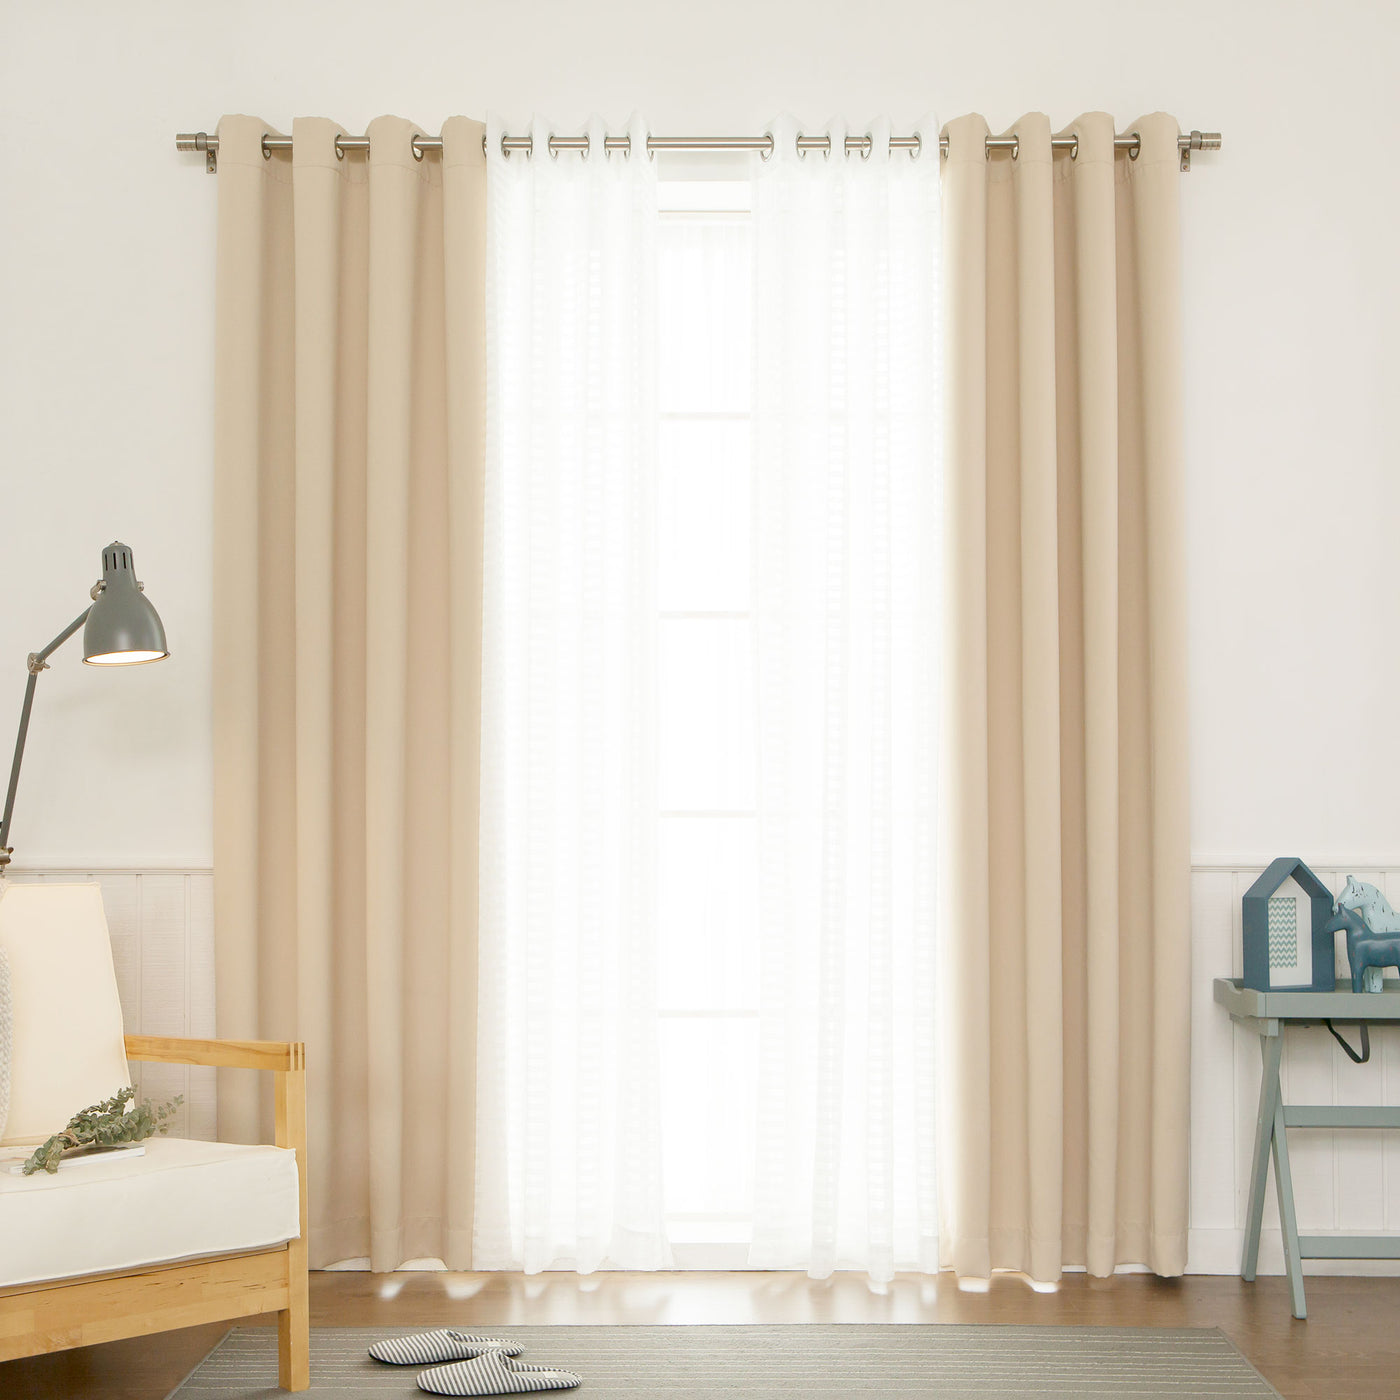 uMIXm Sheer Checkered & Blackout Curtains